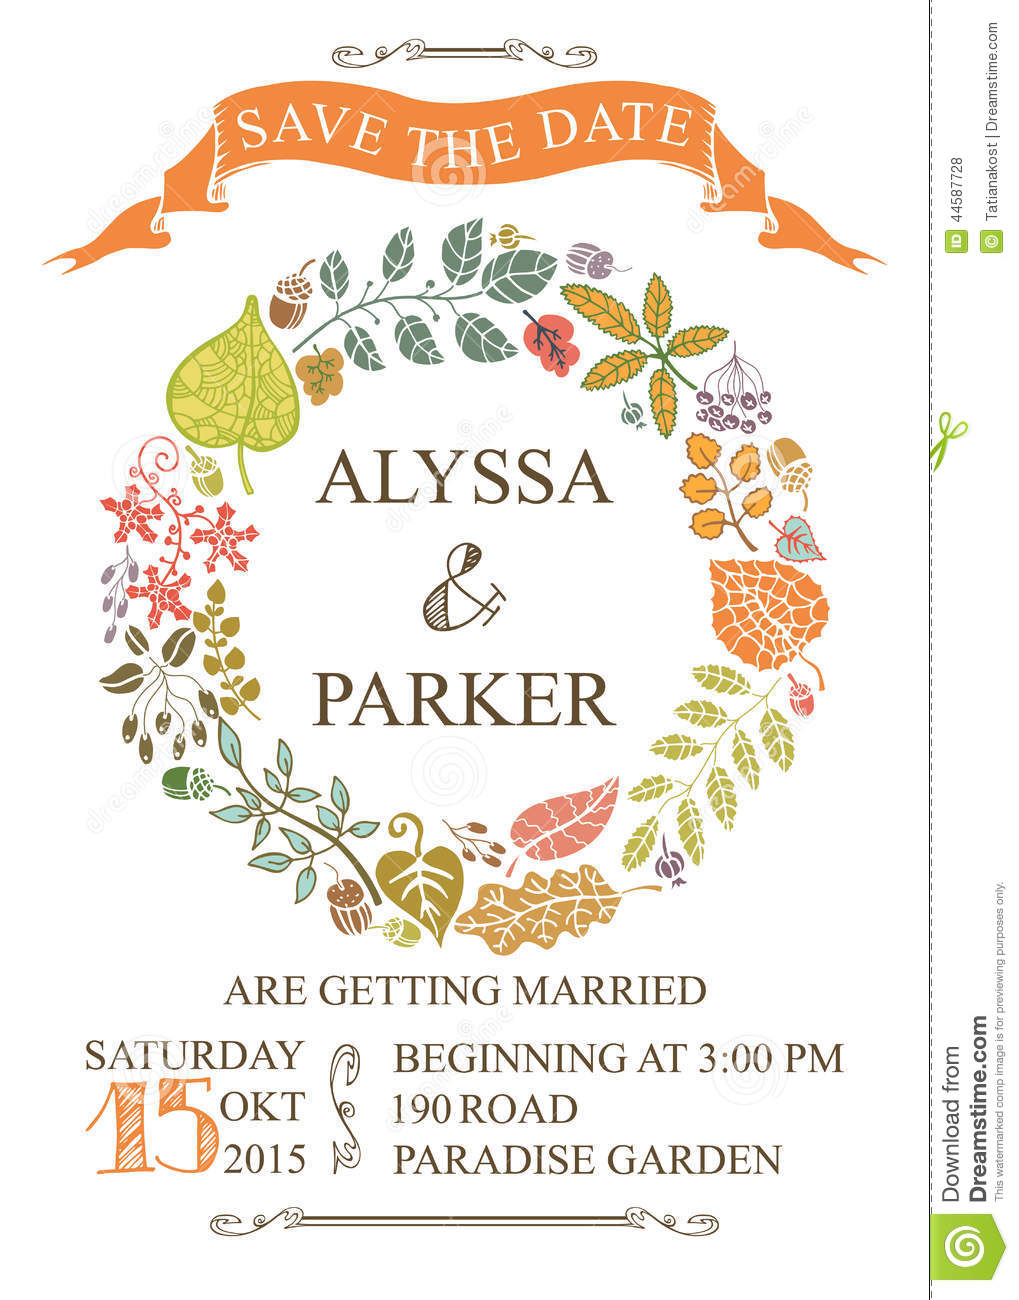 Autumn Wedding Save Date Card With Leaves Wreath Stock Vector - Image ...